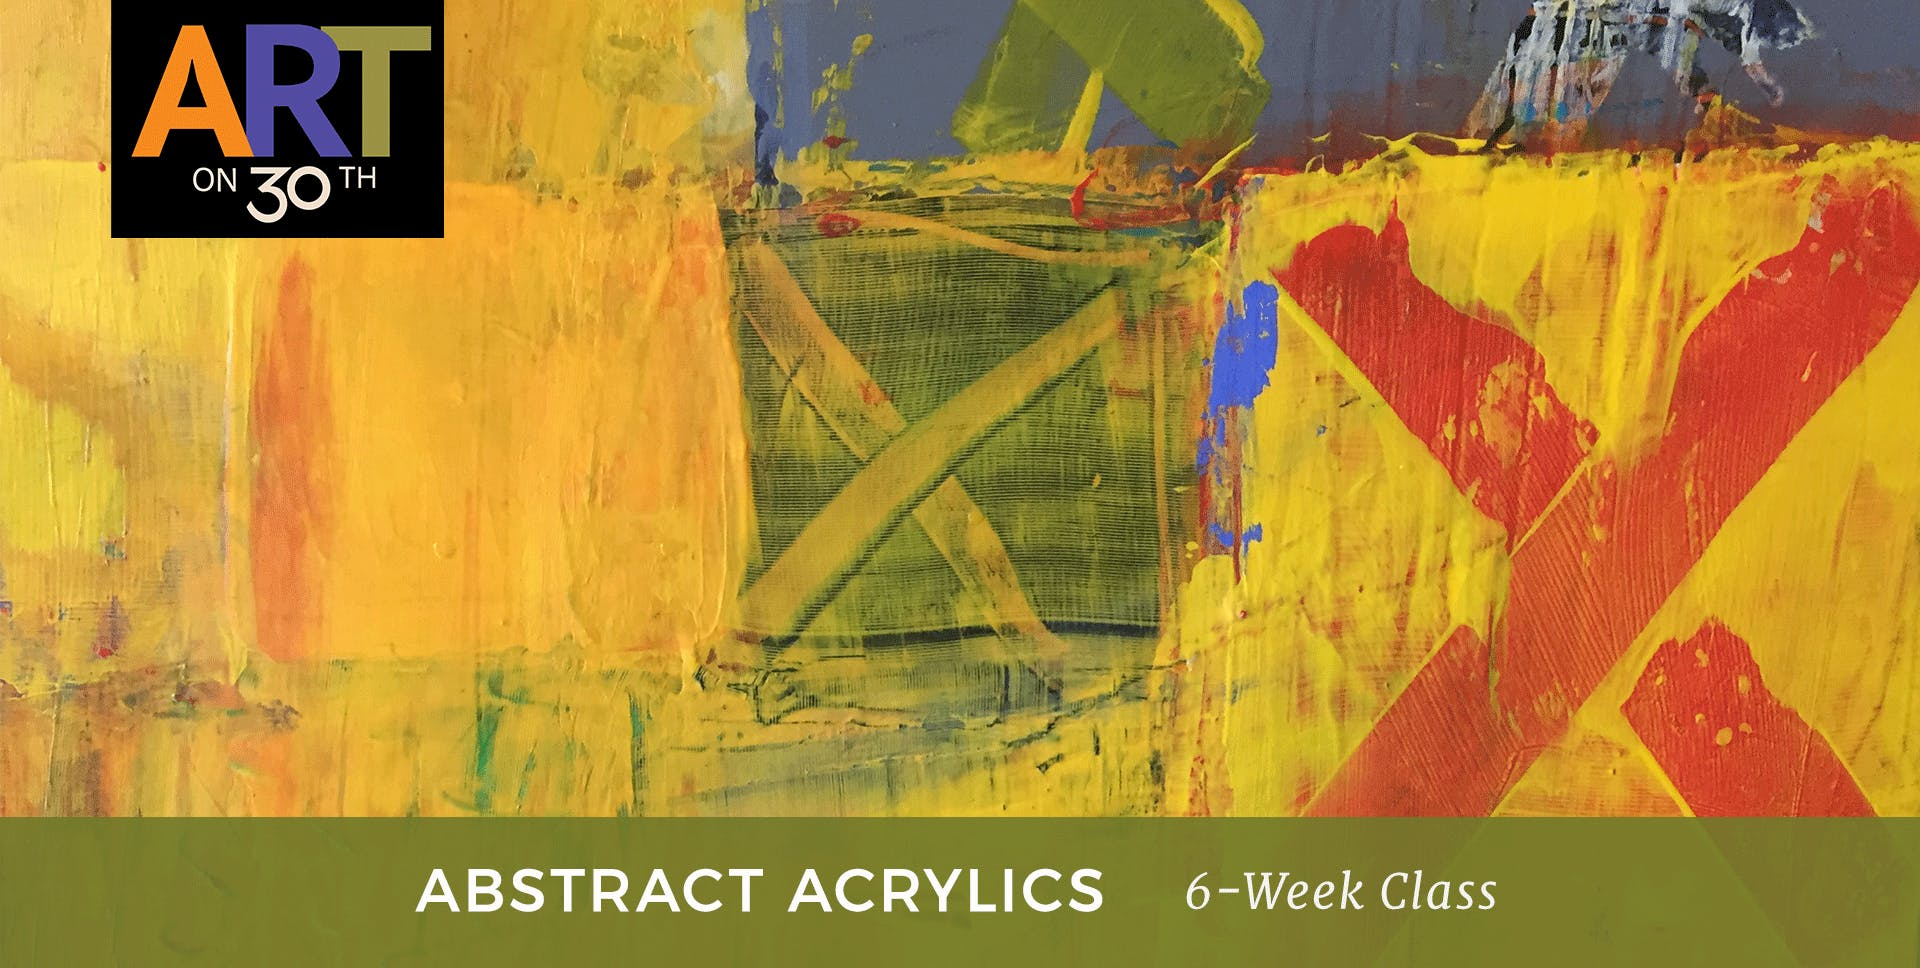 MON - Intro to Abstract Acrylic Painting with instructor Kristen Ide